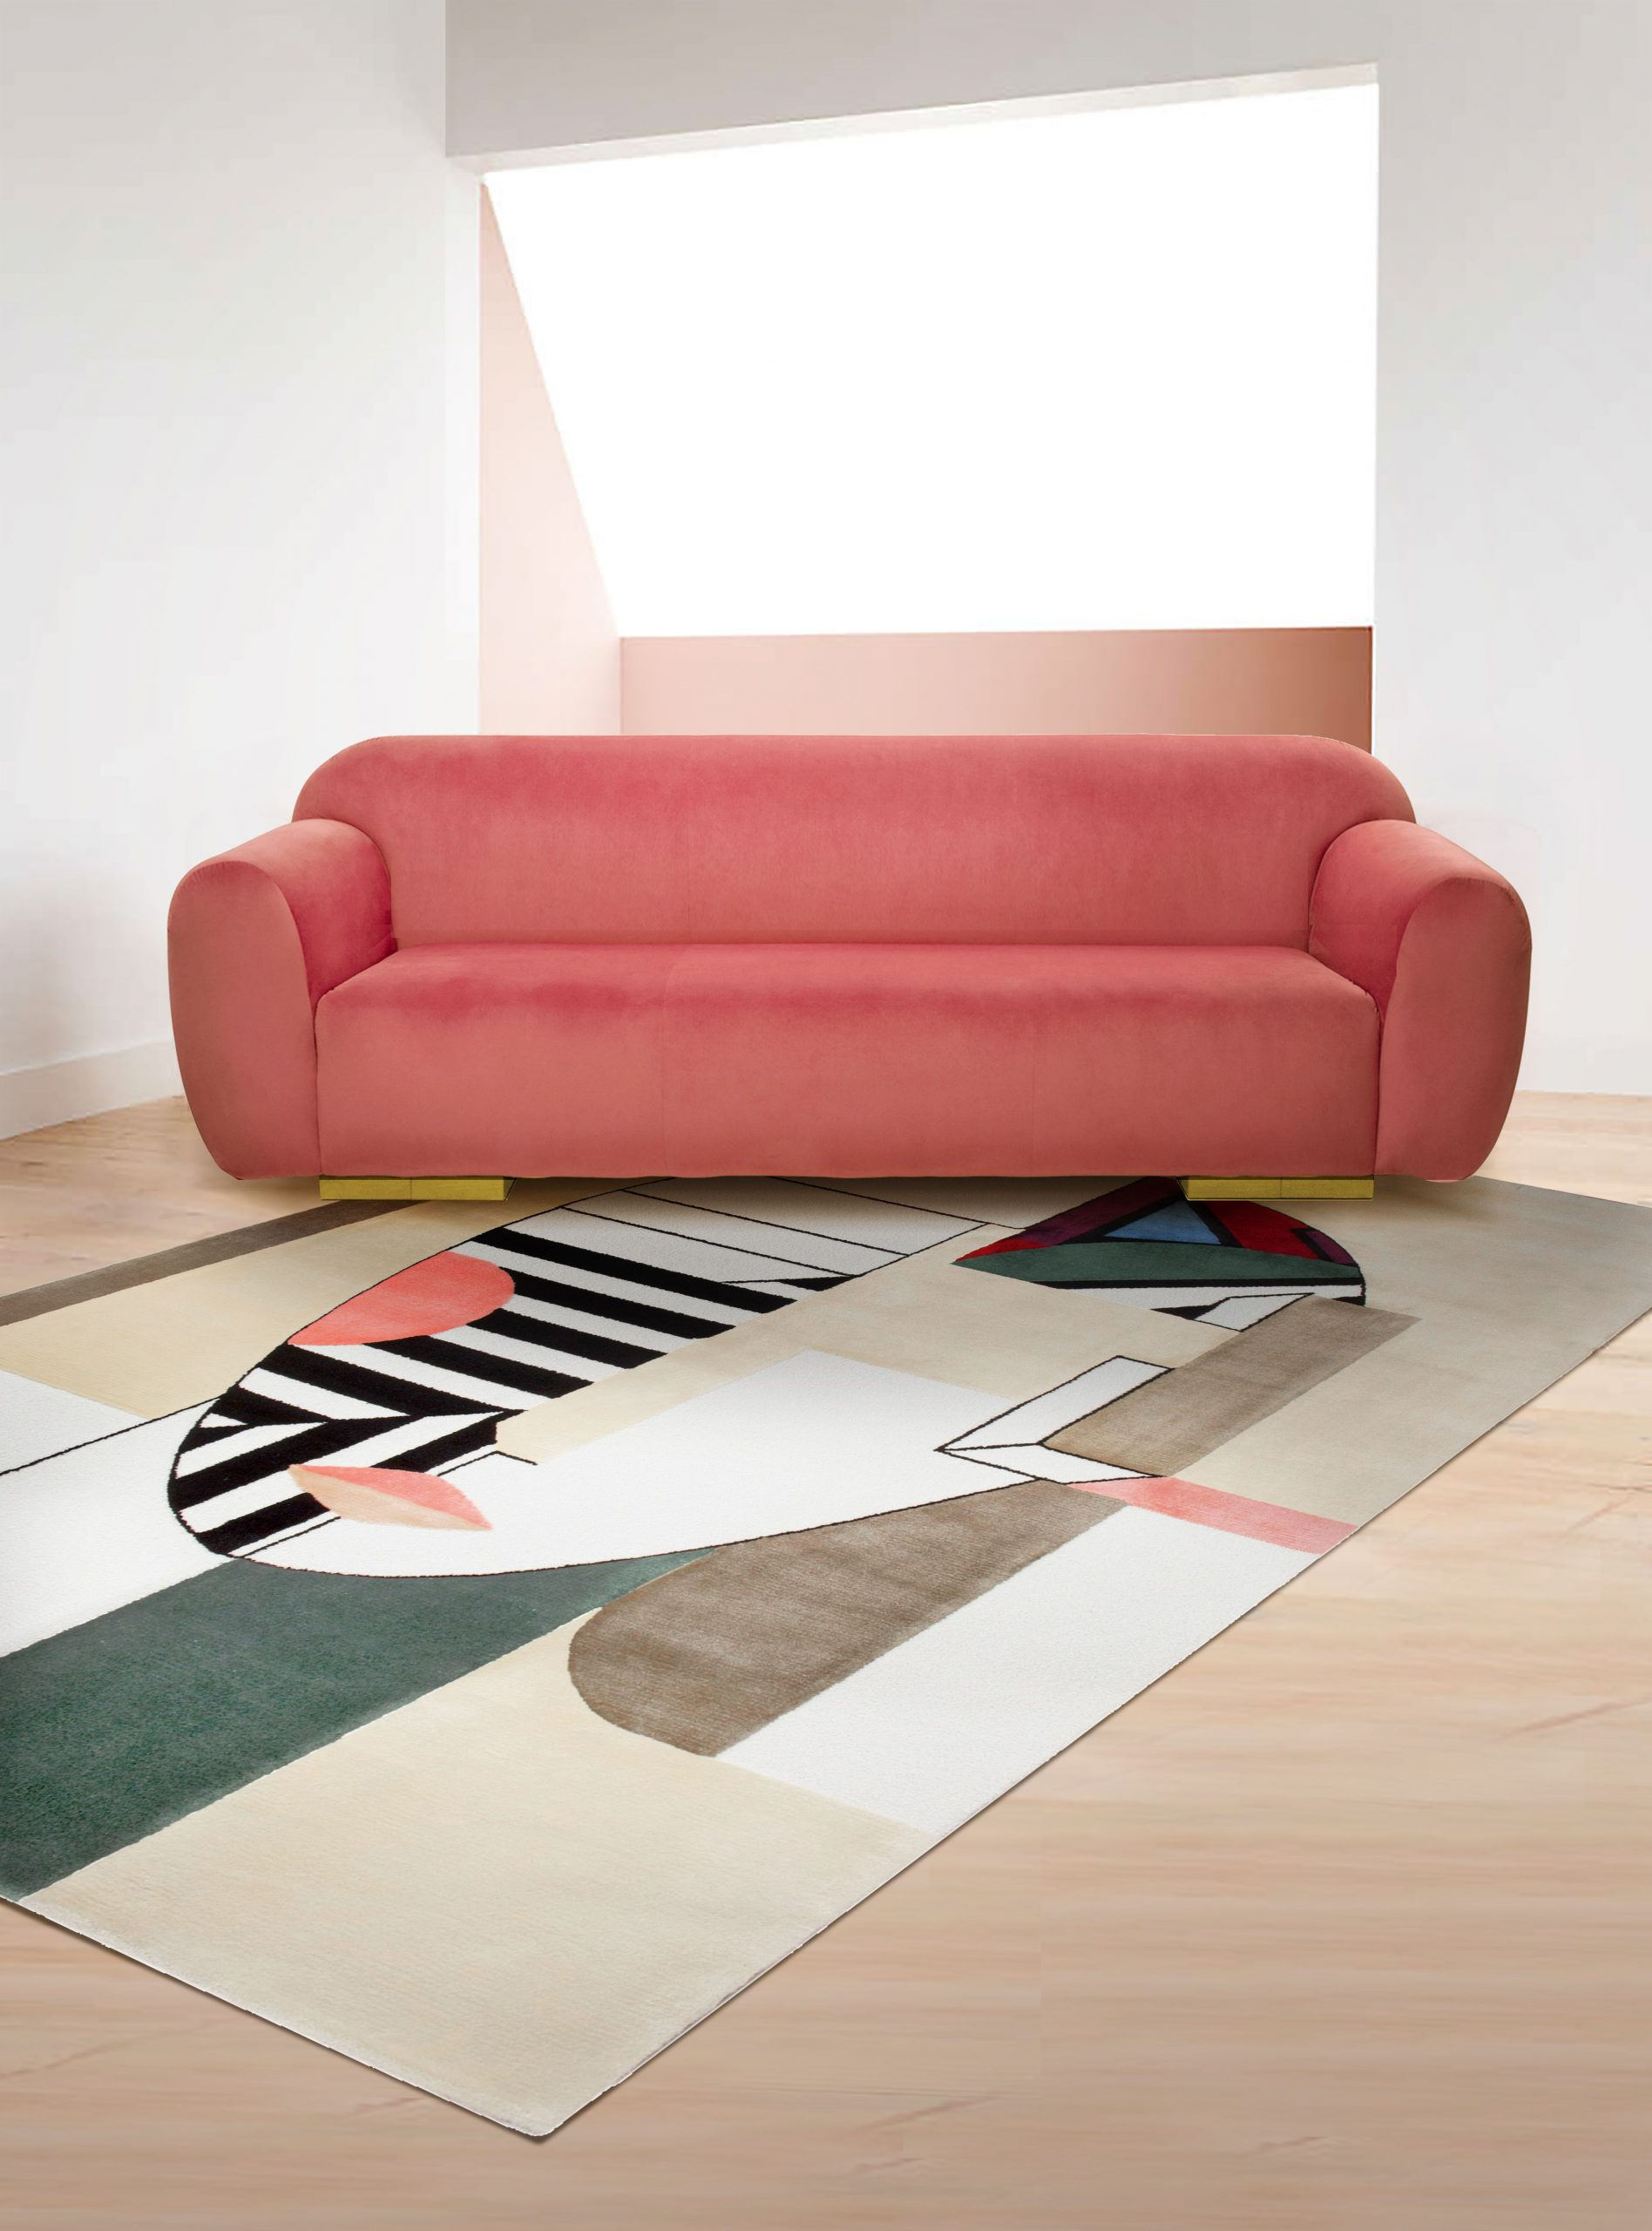 LIVING ROOM WITH OSCAR COLORFUL RUG AND PINK DETAILS